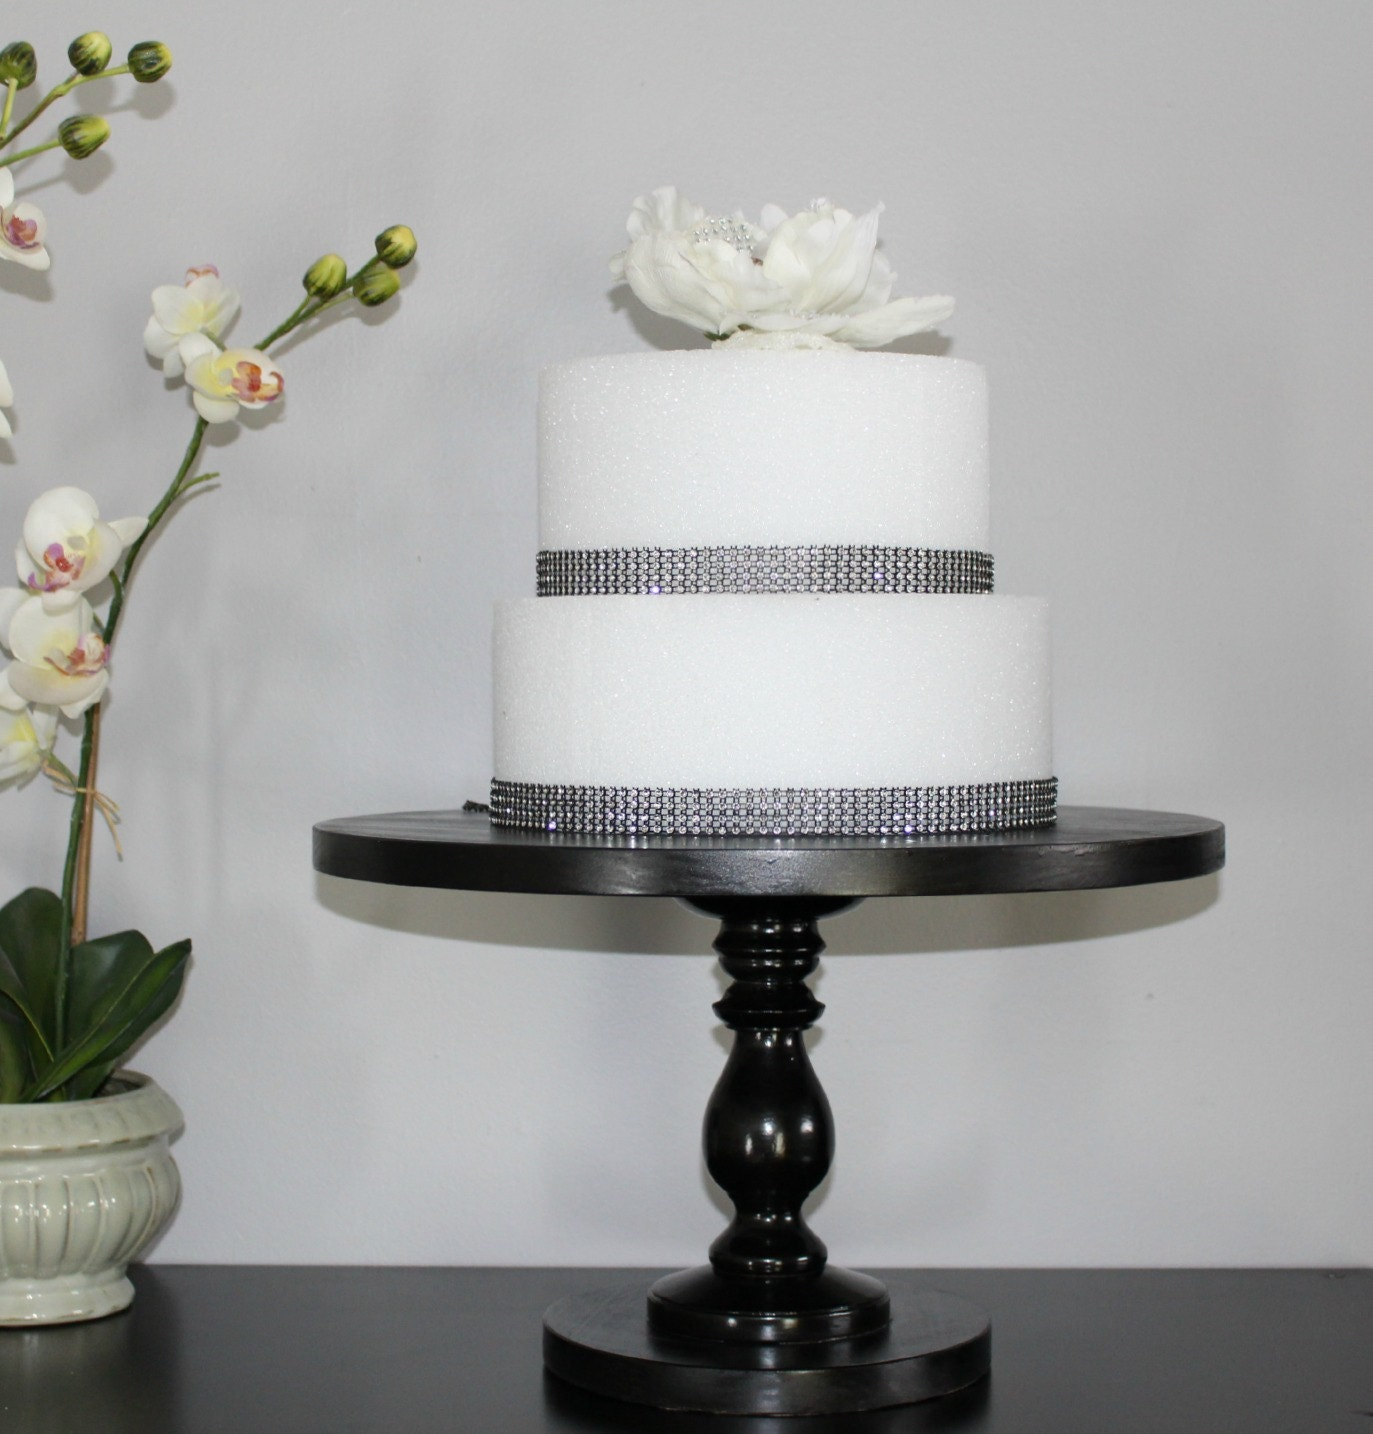 Cake Stand Shiny Black 16 inch Tall Bridal Baby shower